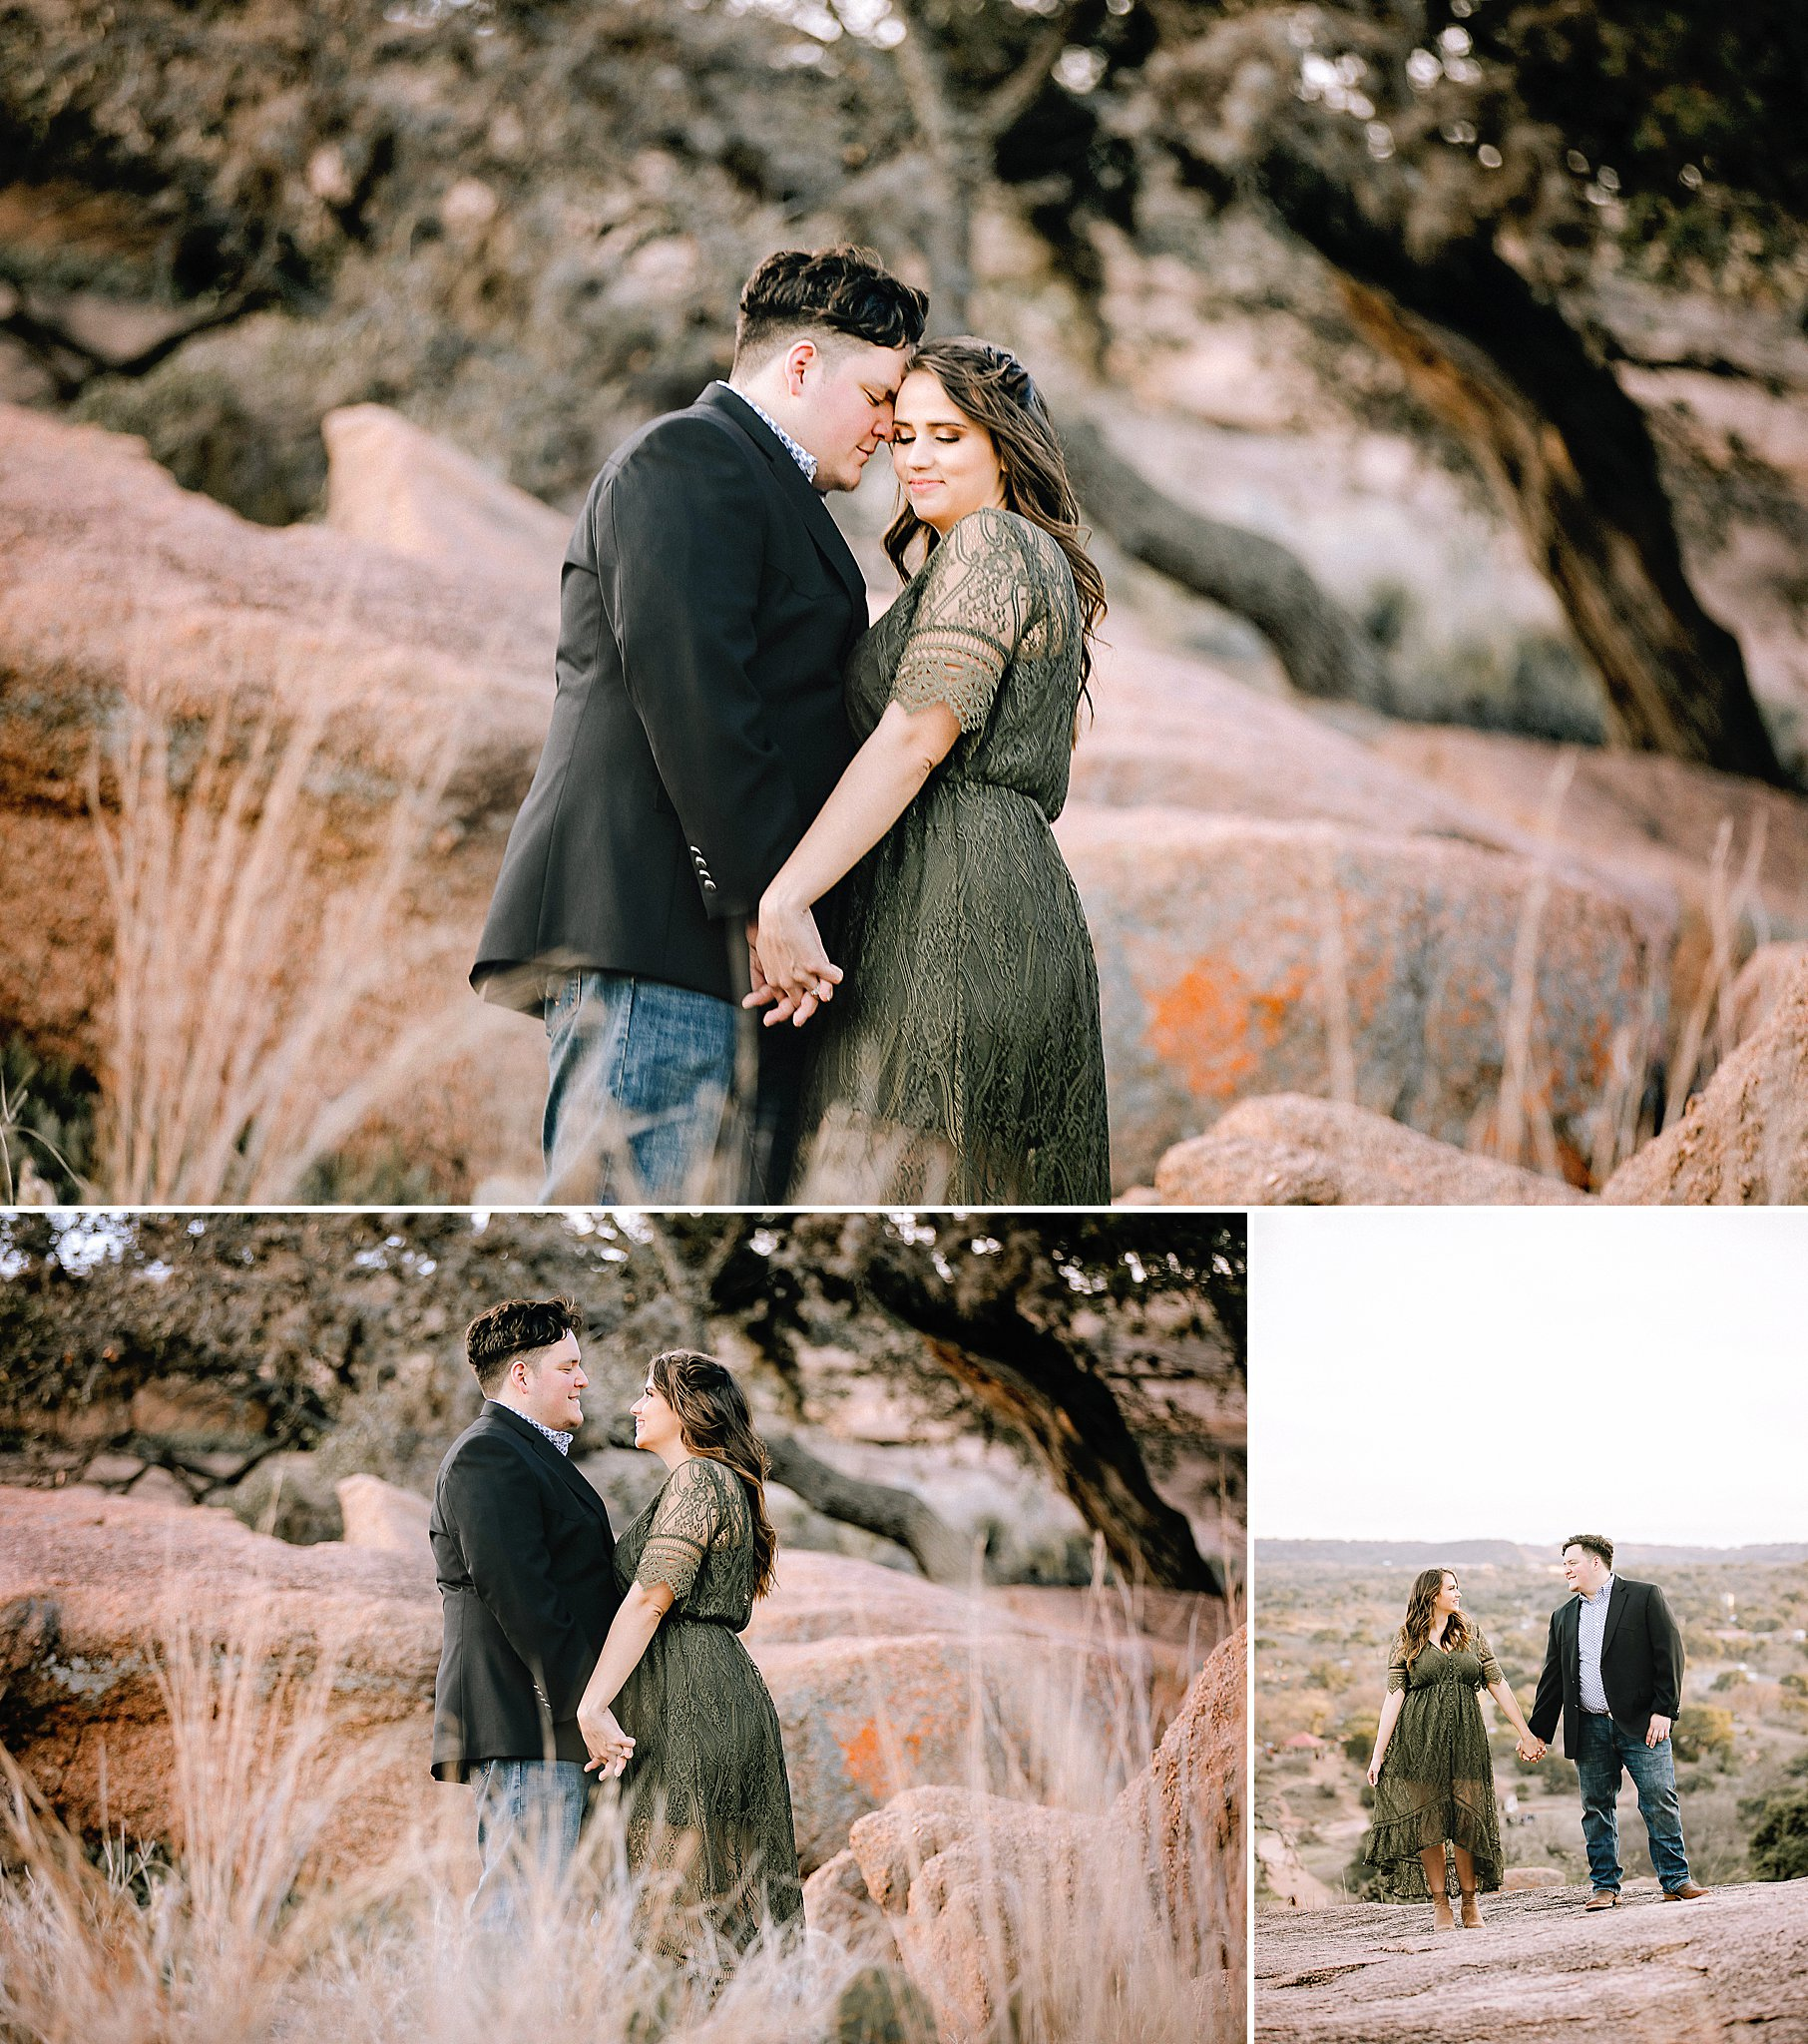 Carly-Barton-Photography-Fredericksburg-Texas-Engagement-Session-Enchanted-Rock-Photos_0008.jpg